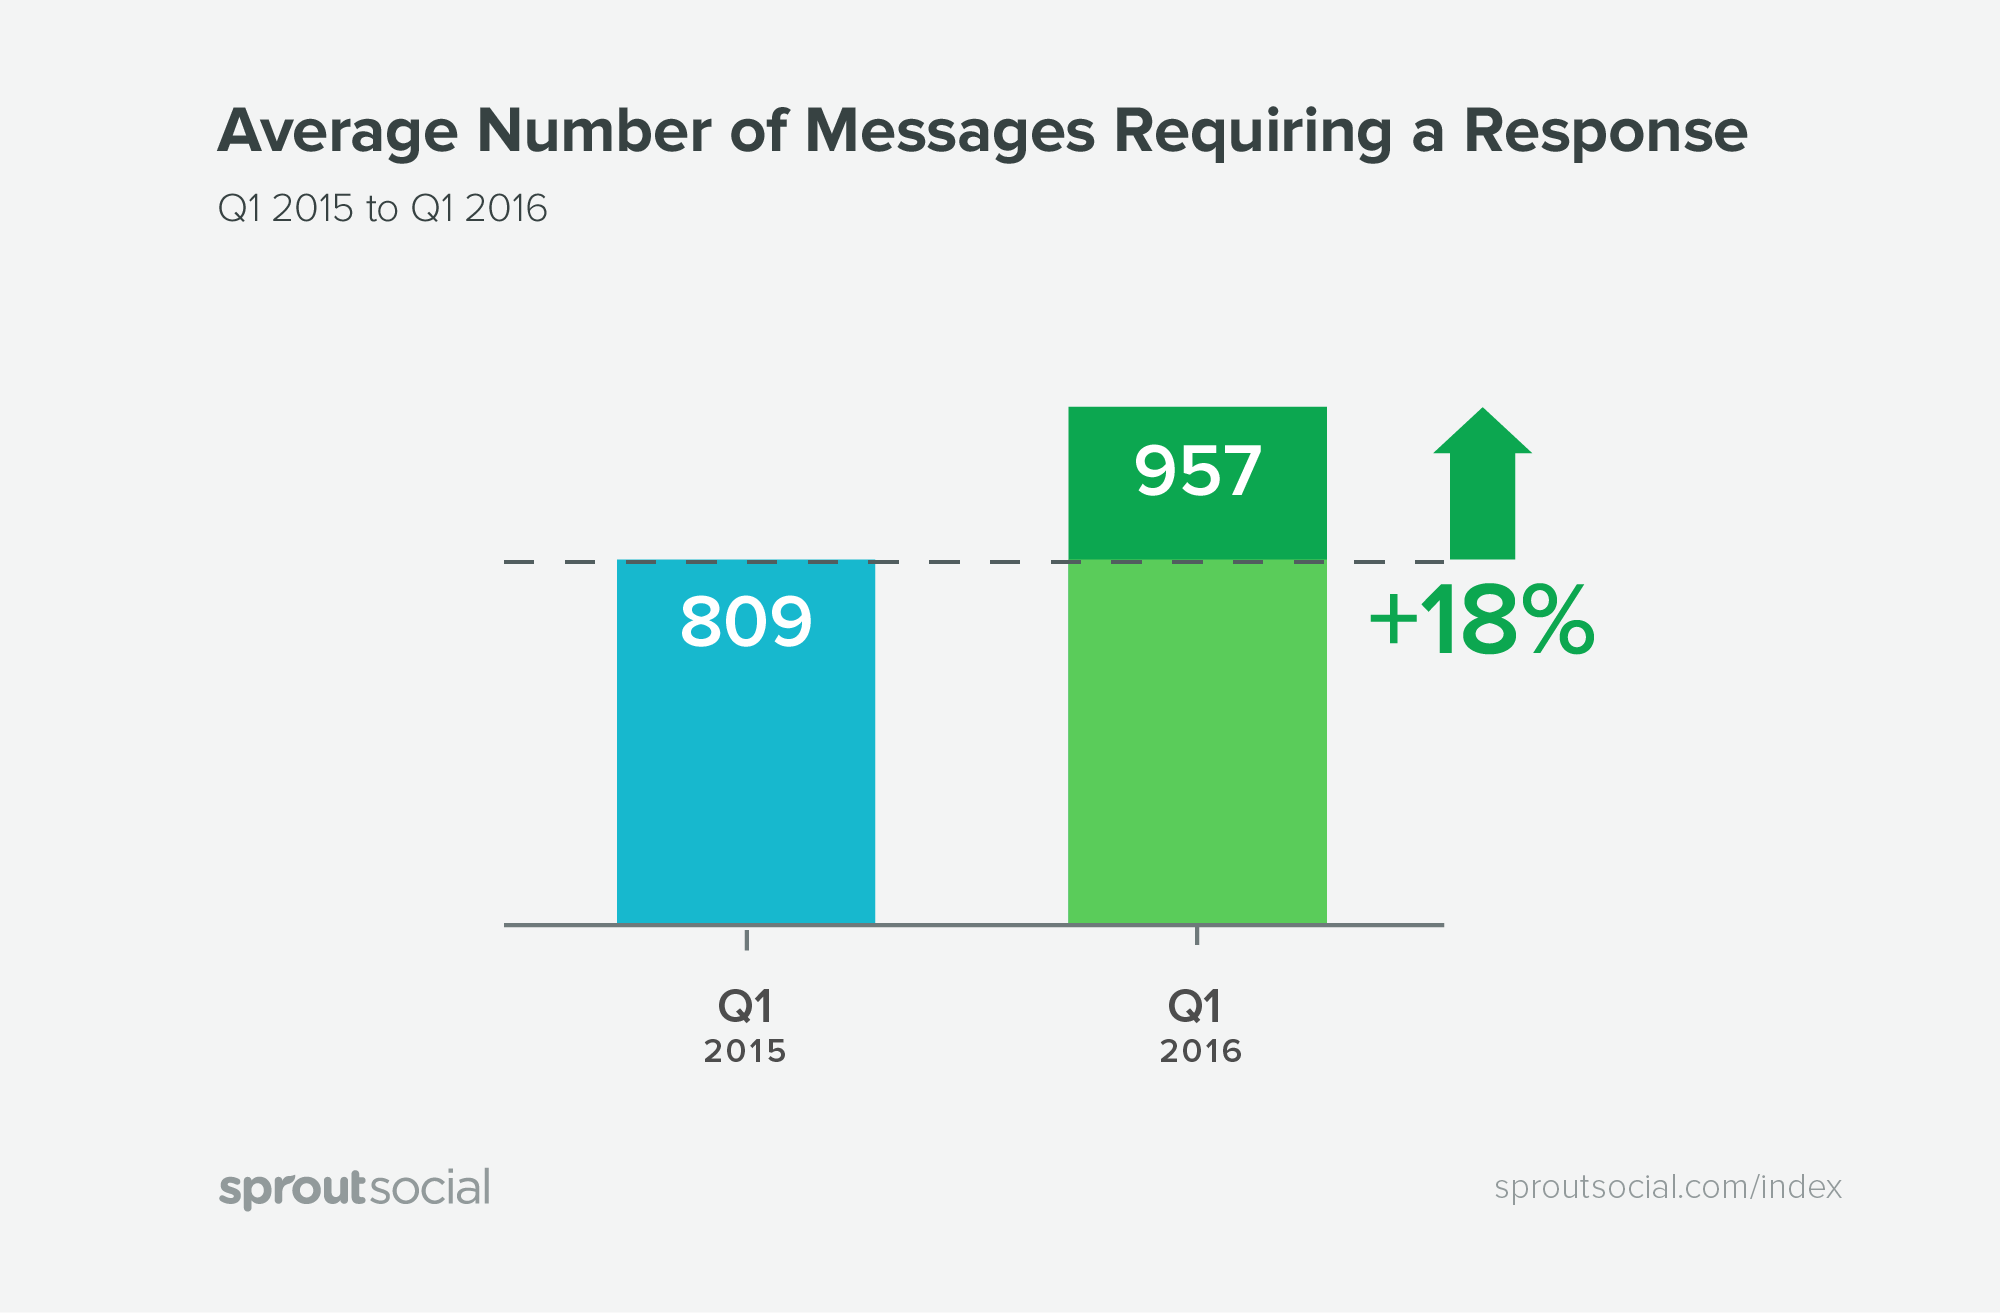 Average number of messages requiring a response